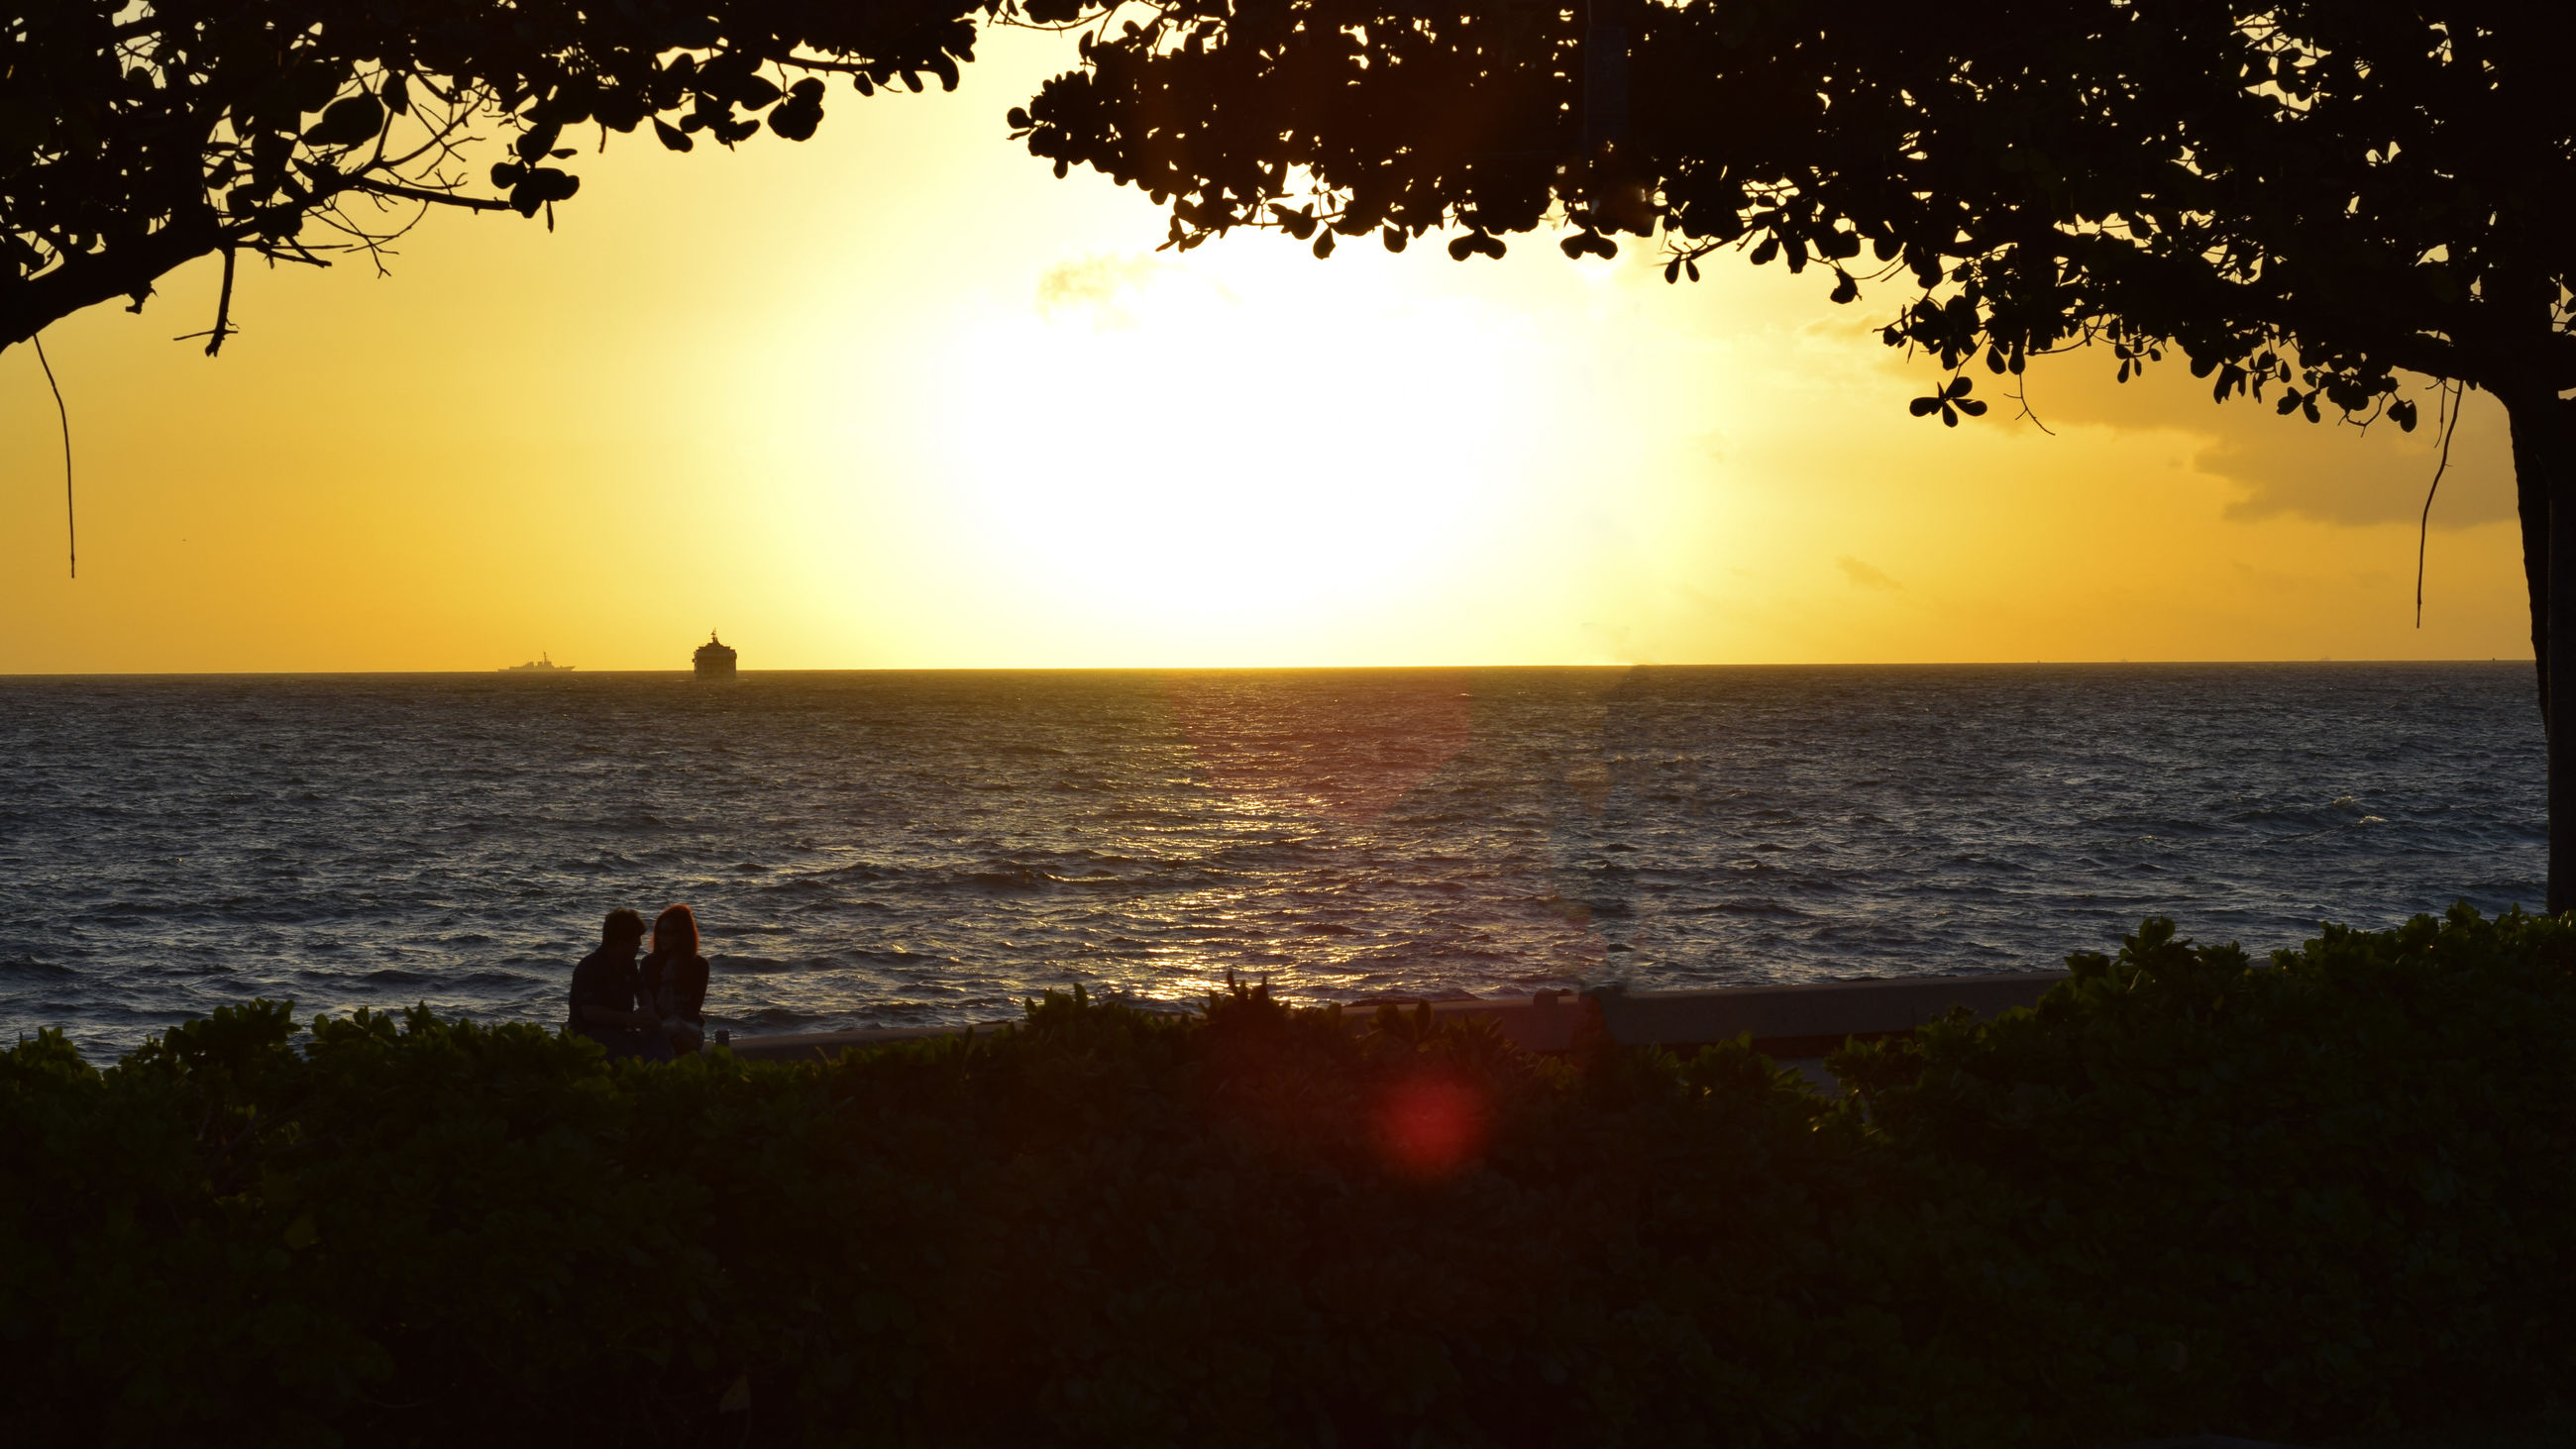 sea, sunset, sun, horizon over water, water, scenics, real people, nature, two people, tree, silhouette, beauty in nature, tranquility, tranquil scene, outdoors, sky, shiny, people, day